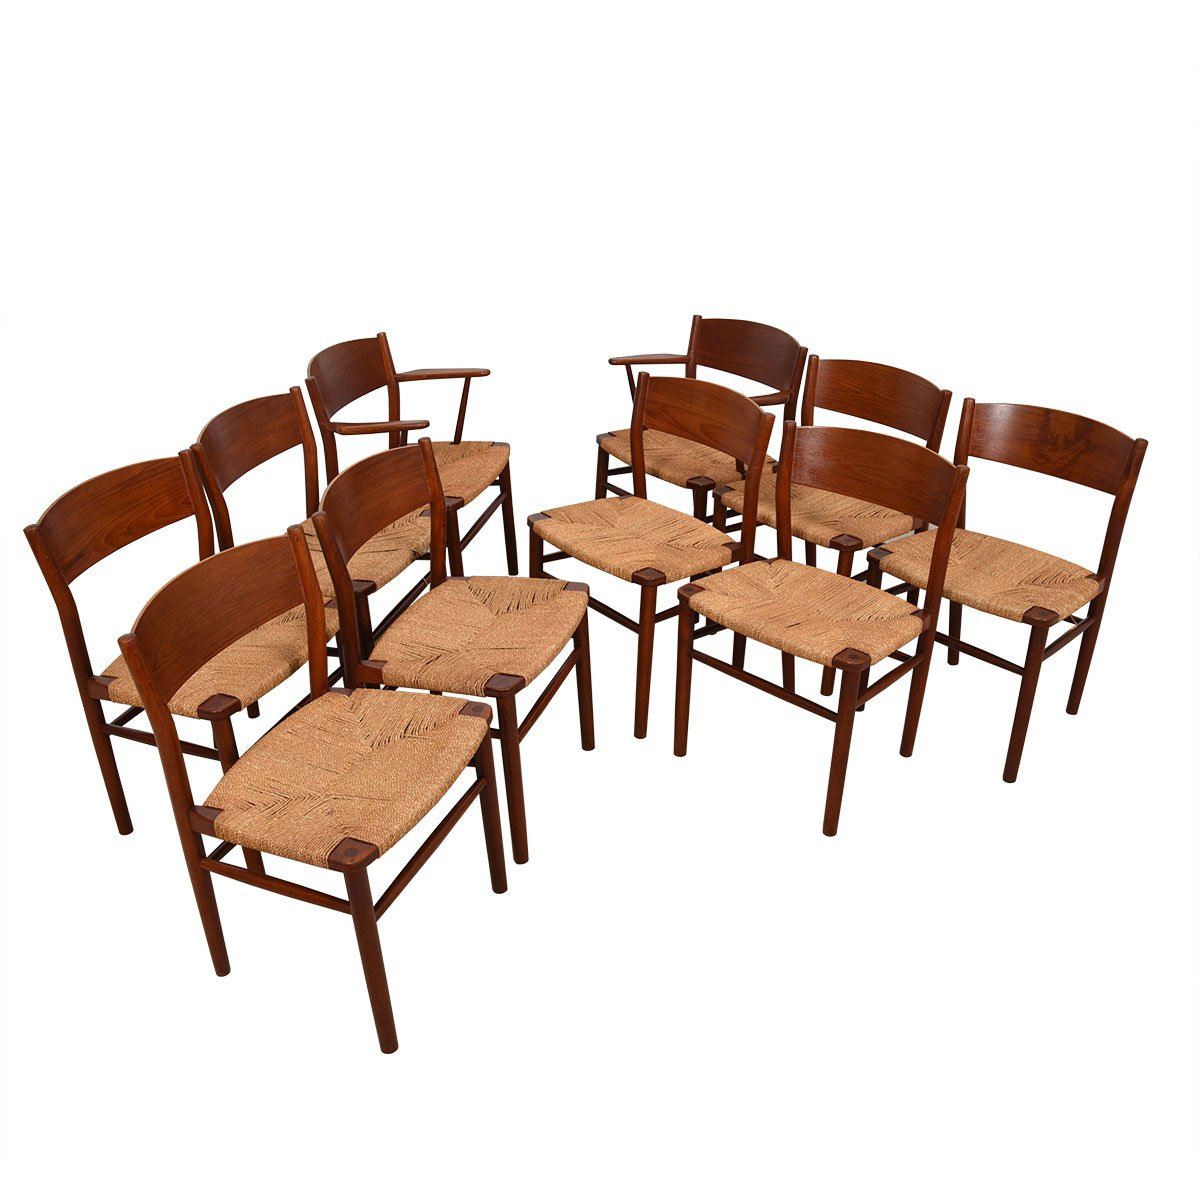 Set of 10 (2 Arm + 8 Side) Peter Hvidt Danish Teak Dining Chairs